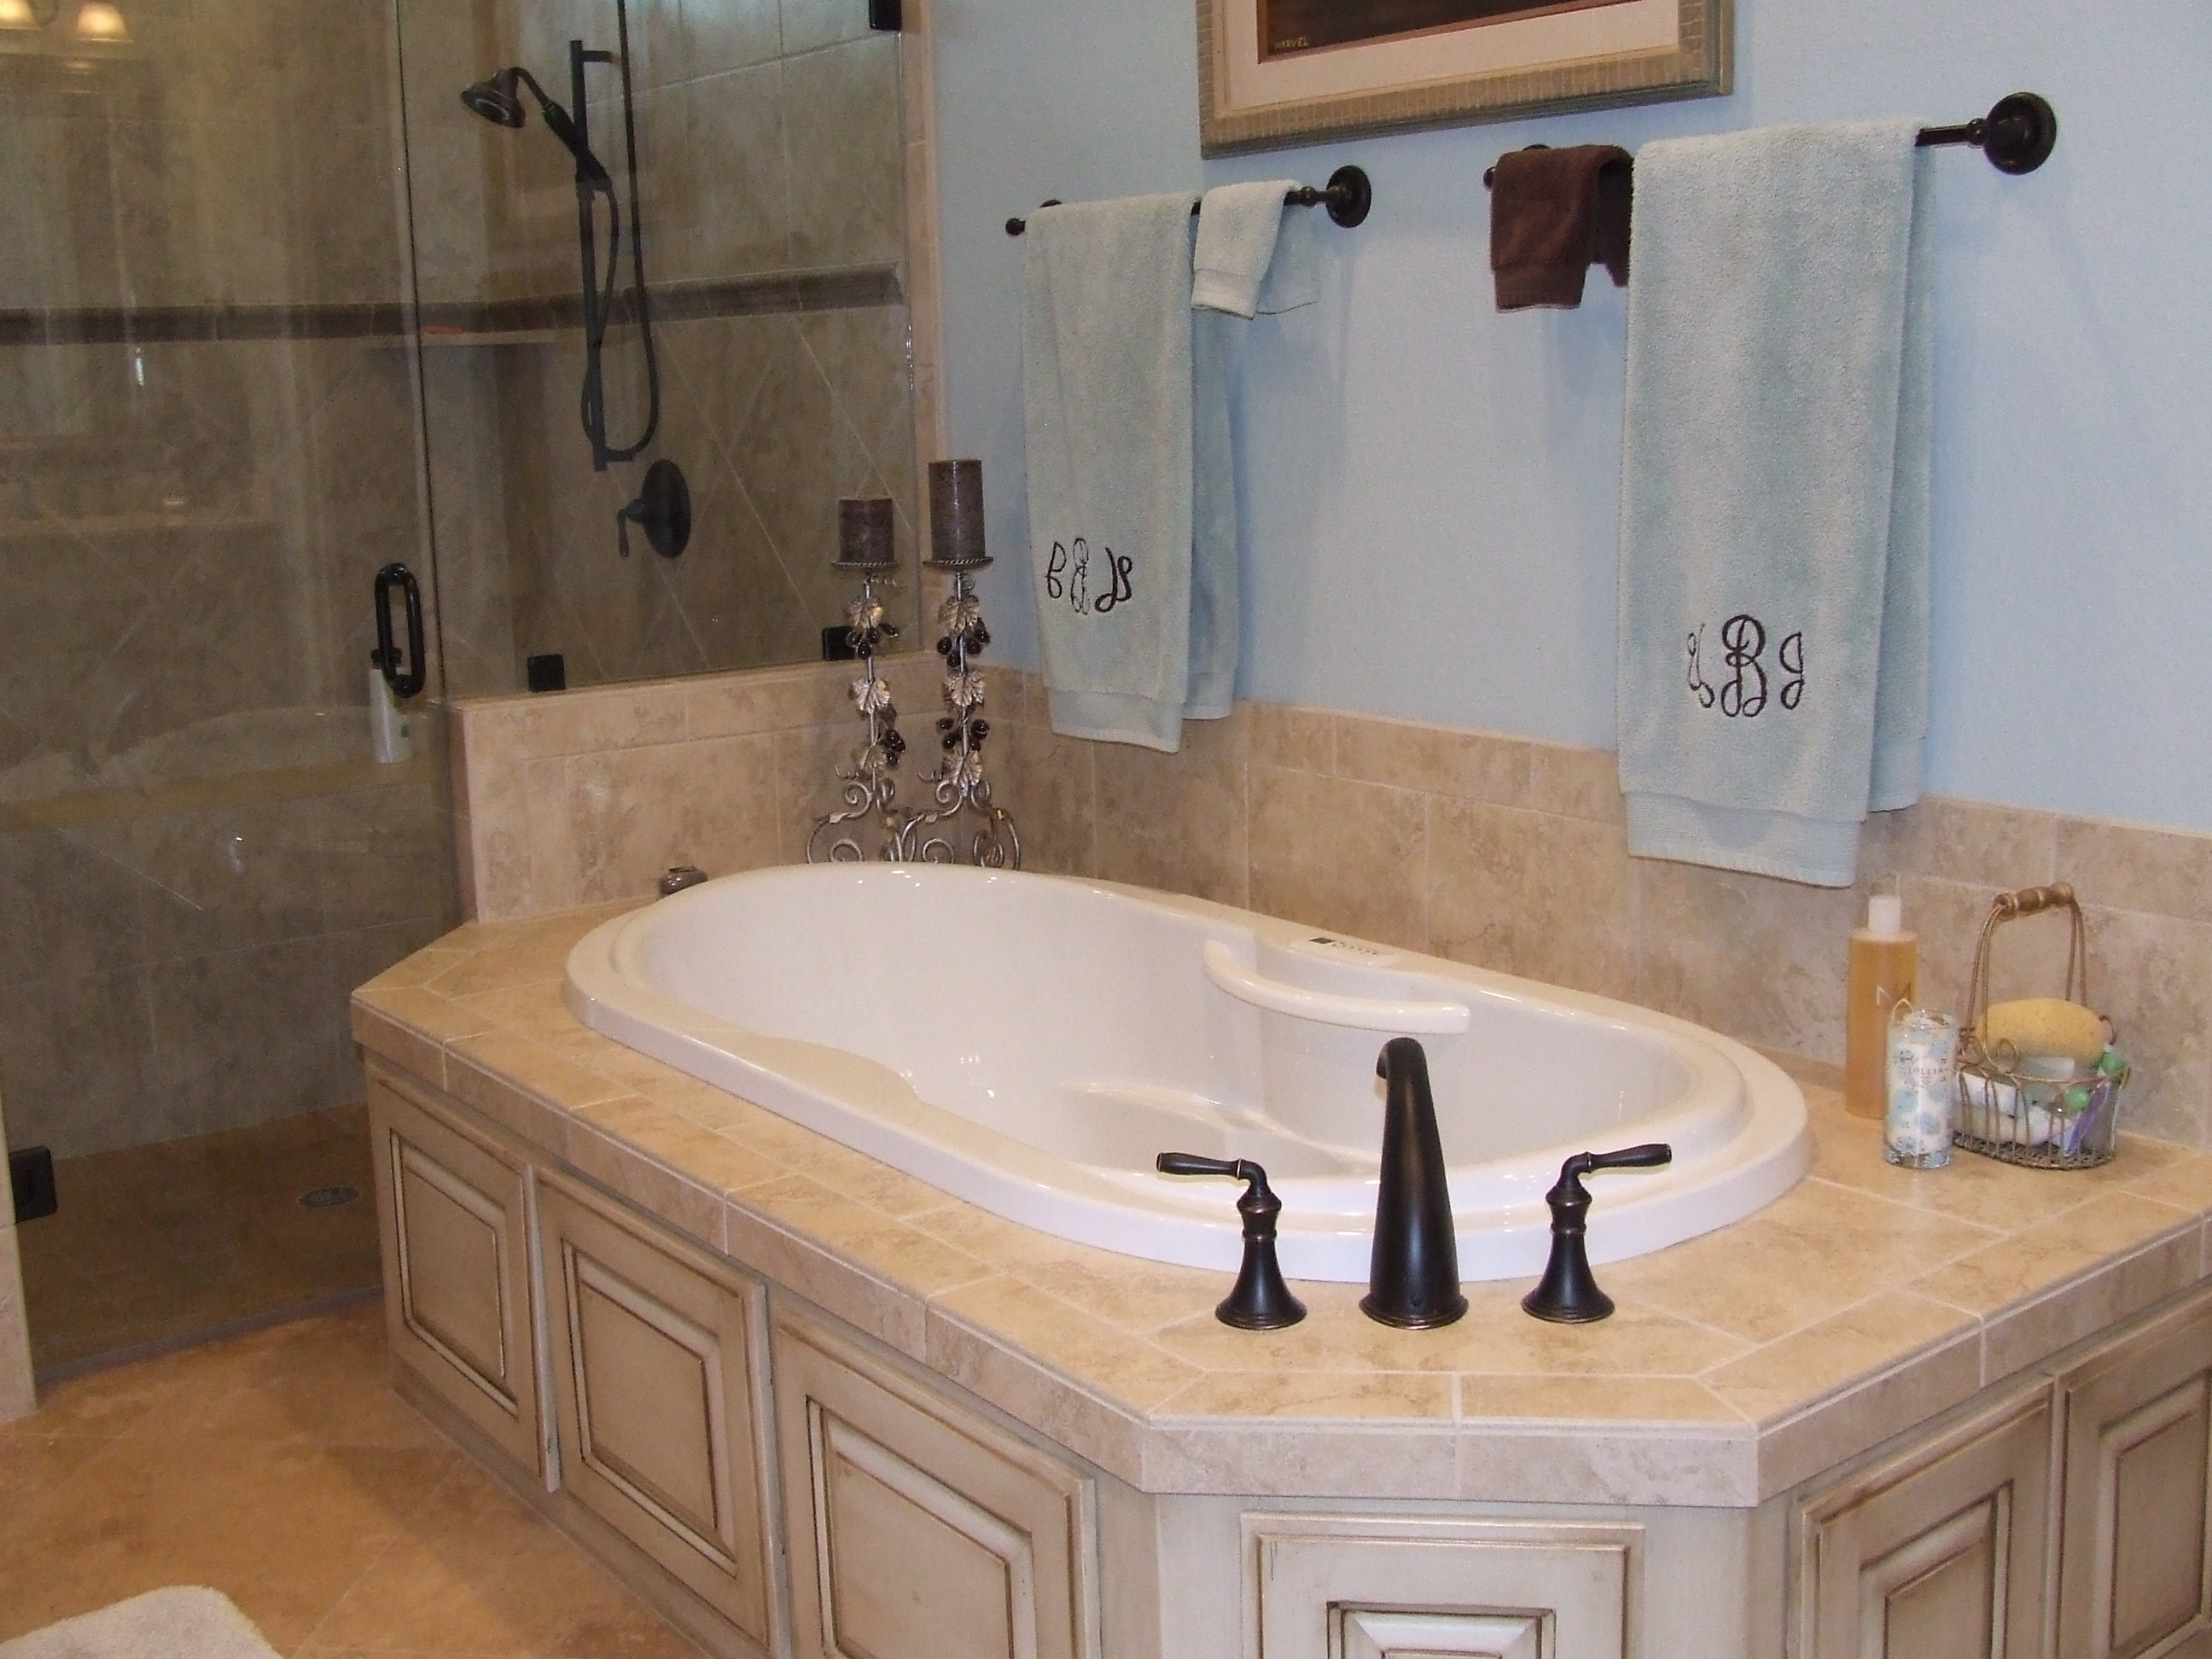 Bathroom remodeling in fort worth texas with robinson for Bath remodel fort worth